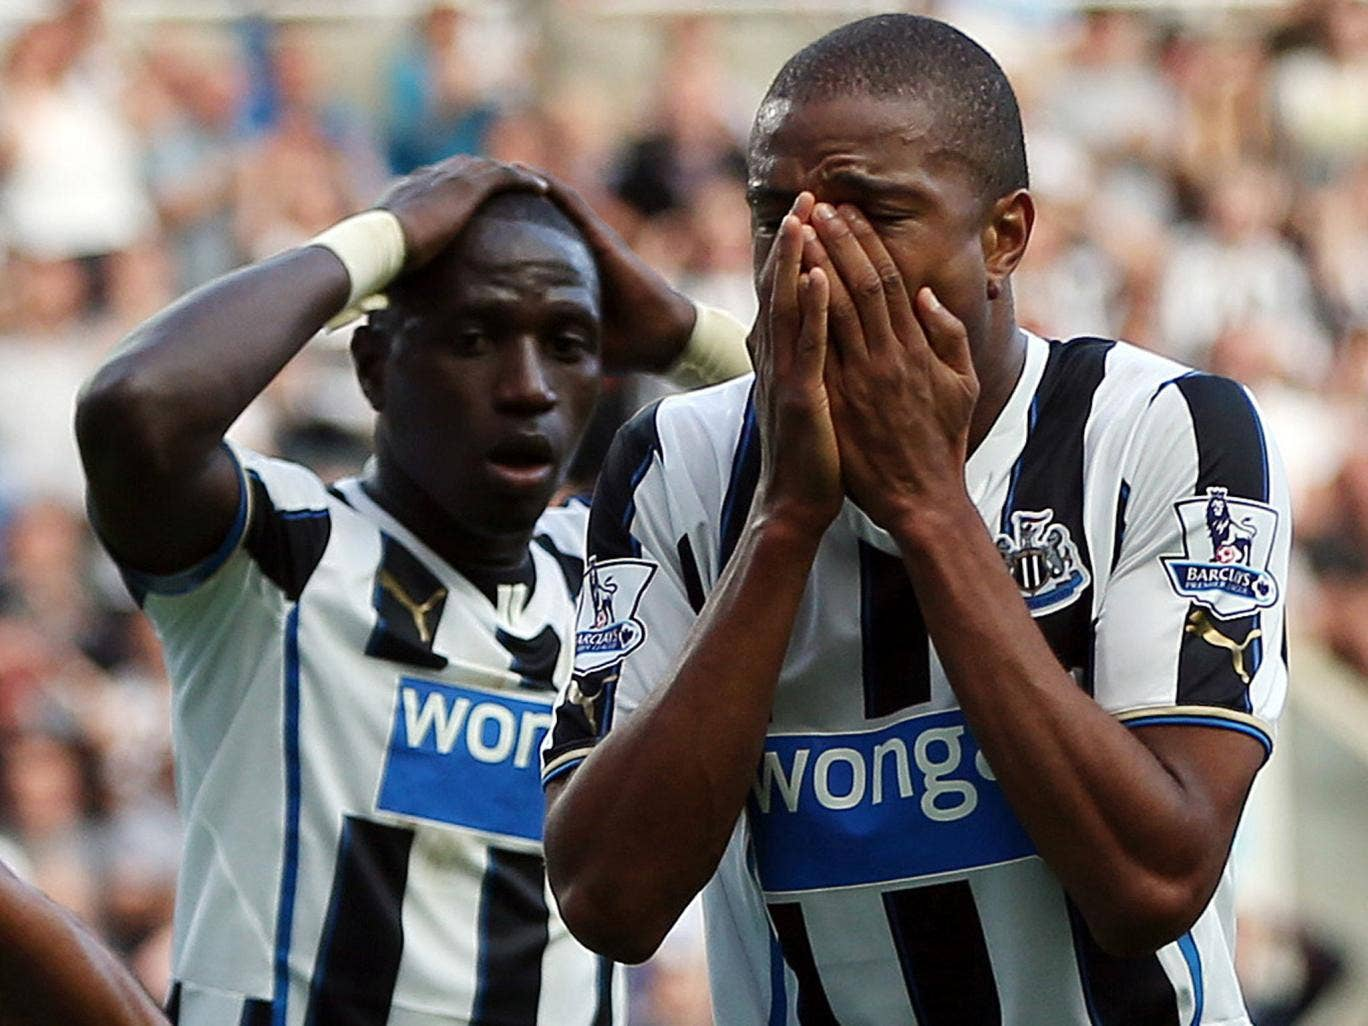 Moussa Sissoko and Loic Remy of Newcastle